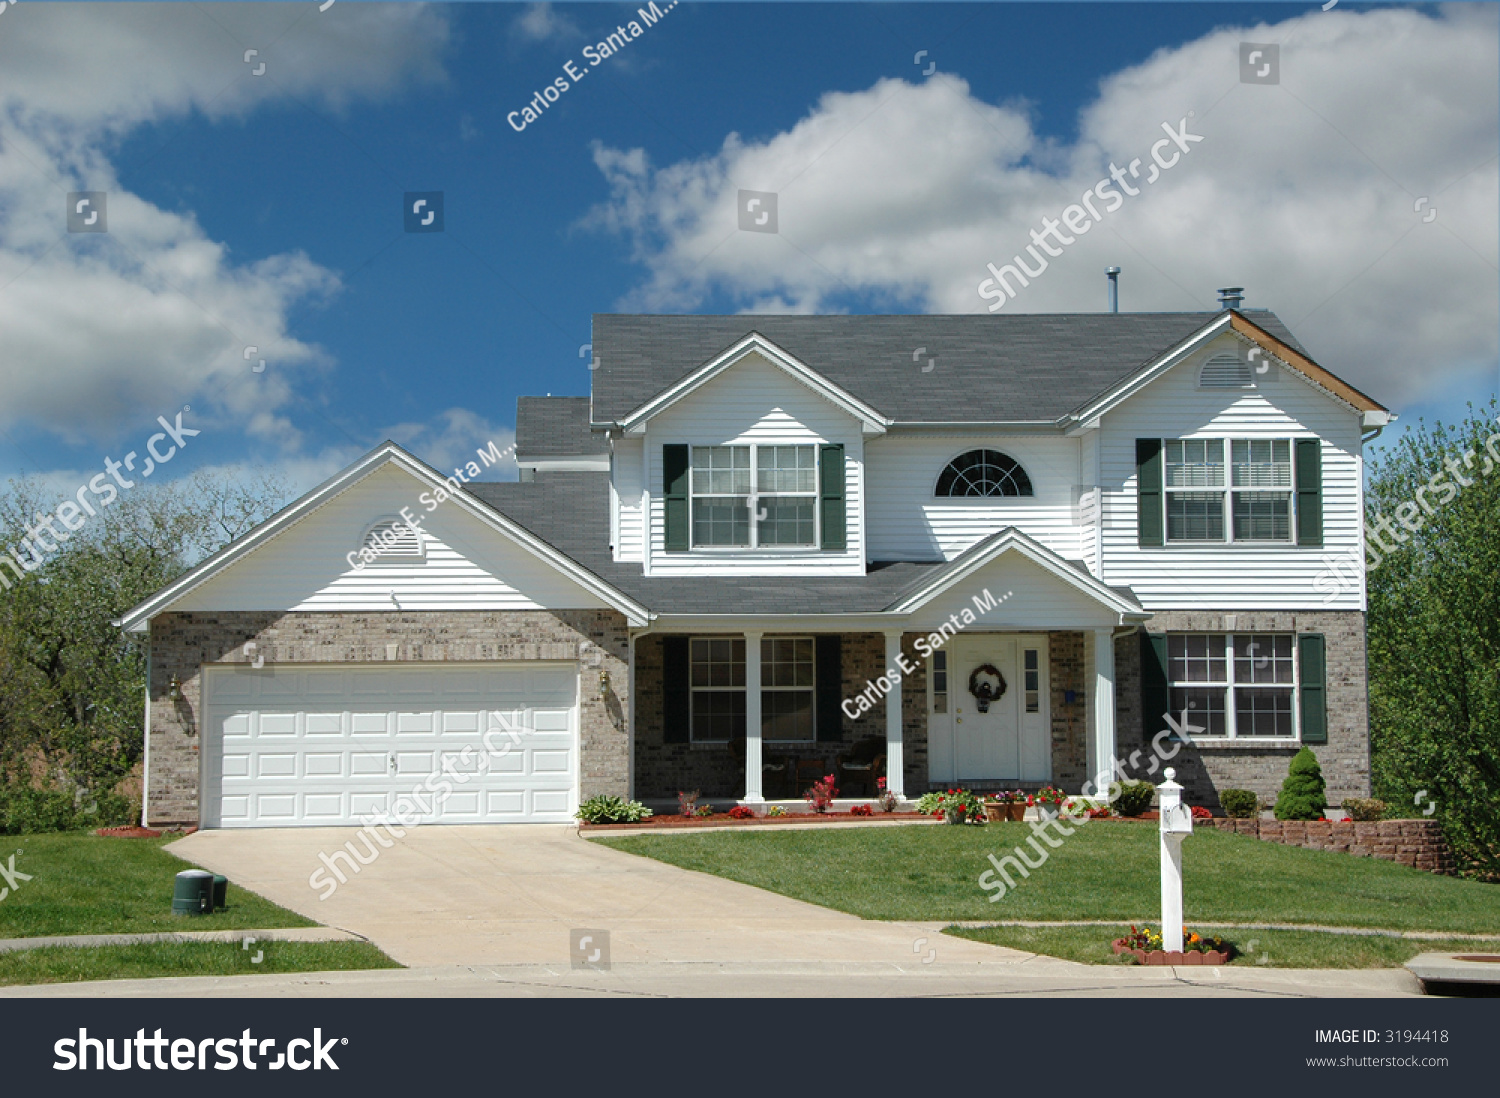 Modern middle class american home clouds stock photo for American classic homes mn